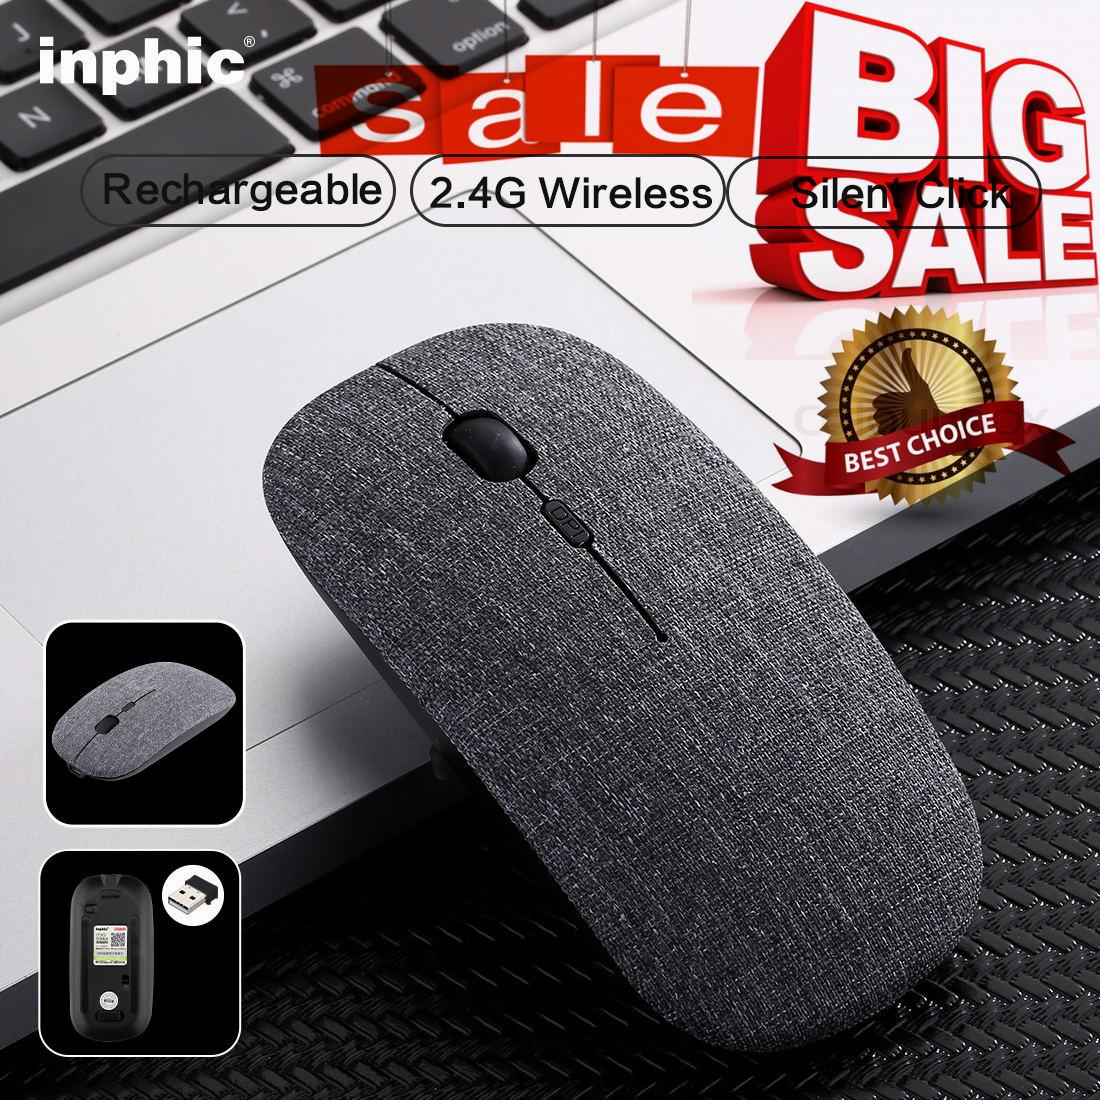 Computer Mouse For Sale Pc Mice Prices Brands Specs In Double Lens Micropack Handmade Cloth Design Rechargeable Wireless Gaming Ultra Thin Portable 24ghz